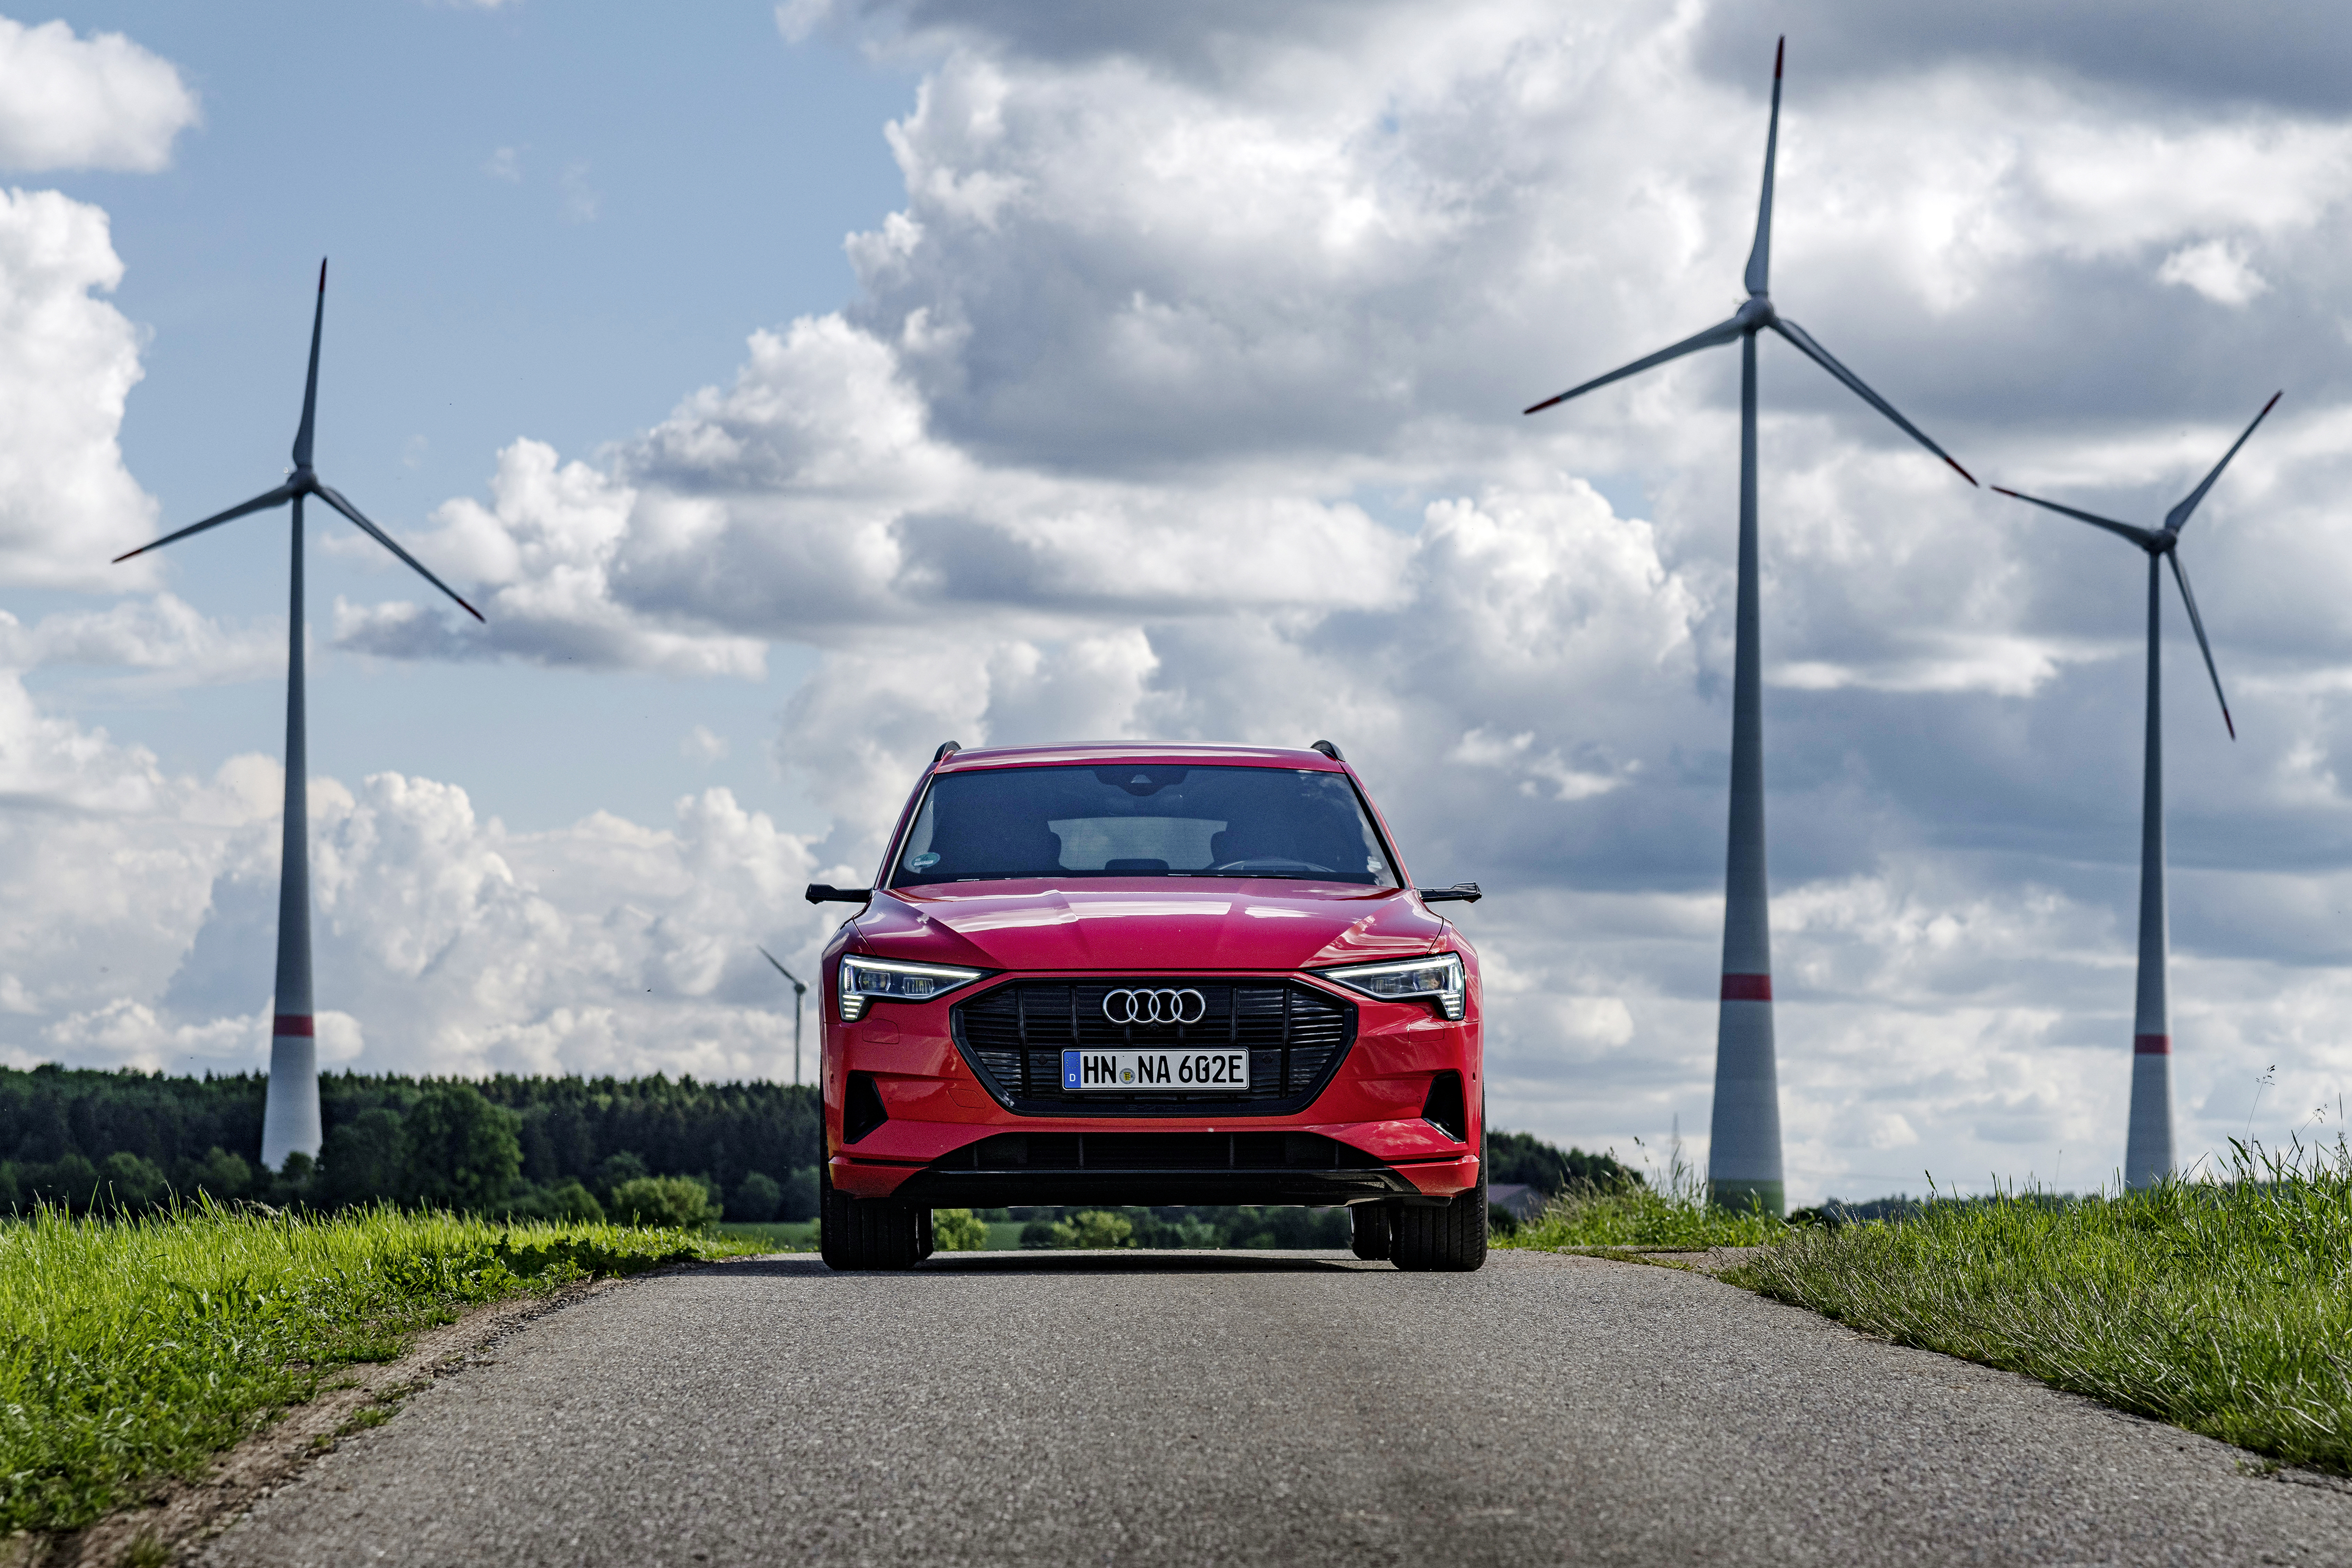 Alongside wind and solar power technology, the transition to renewables needs battery storage. Audi and EnBW plan to use electric car batteries for this purpose. (Photo: EnBW/ARTIS-Daniel Maurer)